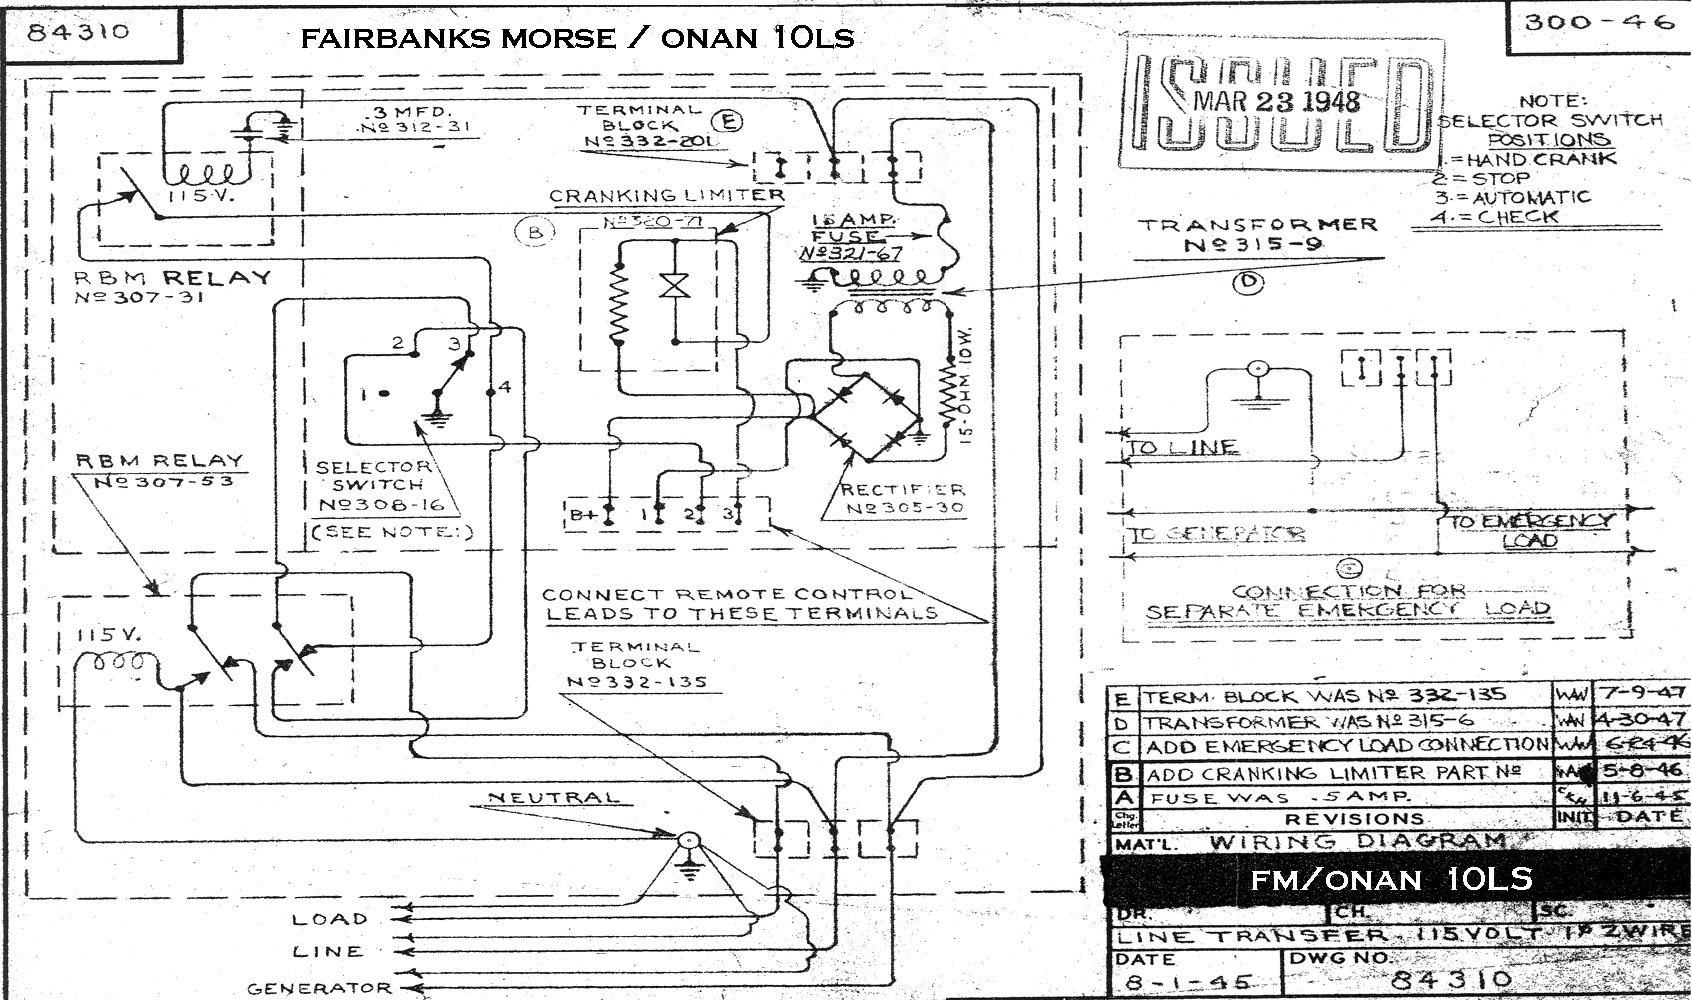 10LS wiring dia 1692_full fairbanks morse 1 kw light plant manual onan generator emerald 1 wiring diagram at love-stories.co